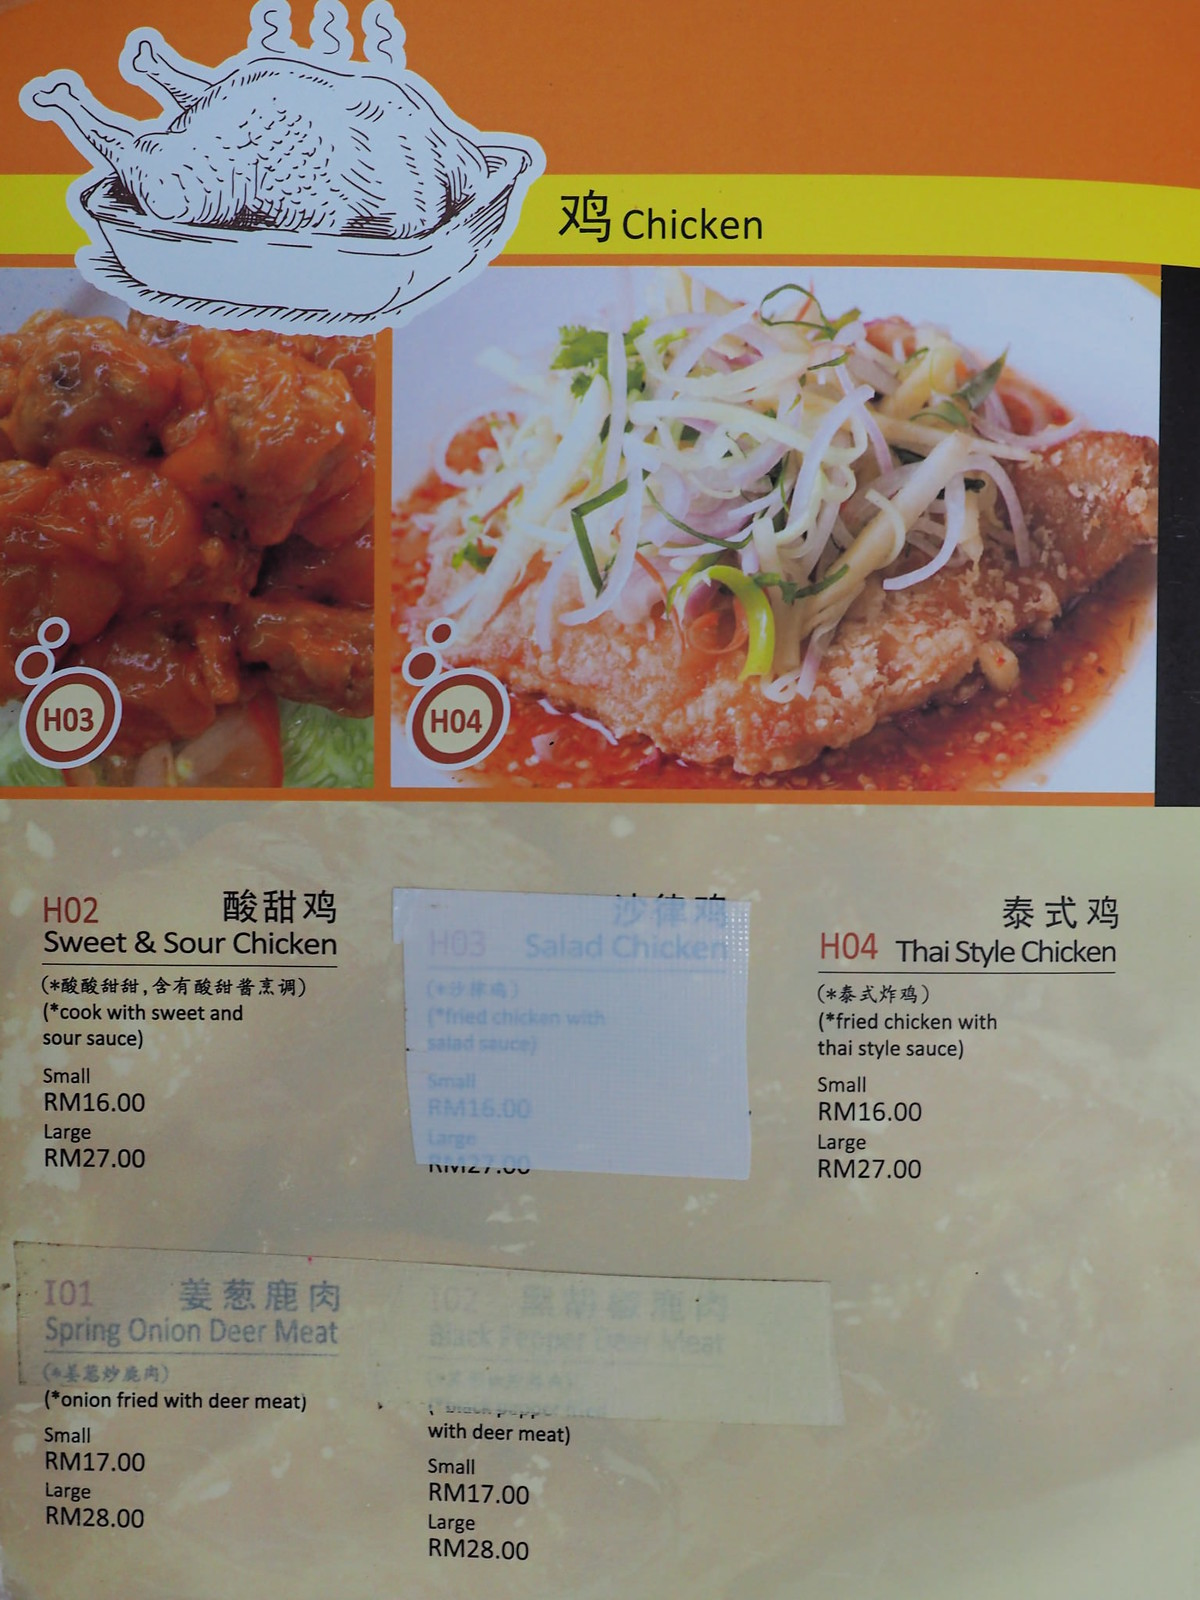 Chicken menu from Pangkor Village Seafood, Taman Megah